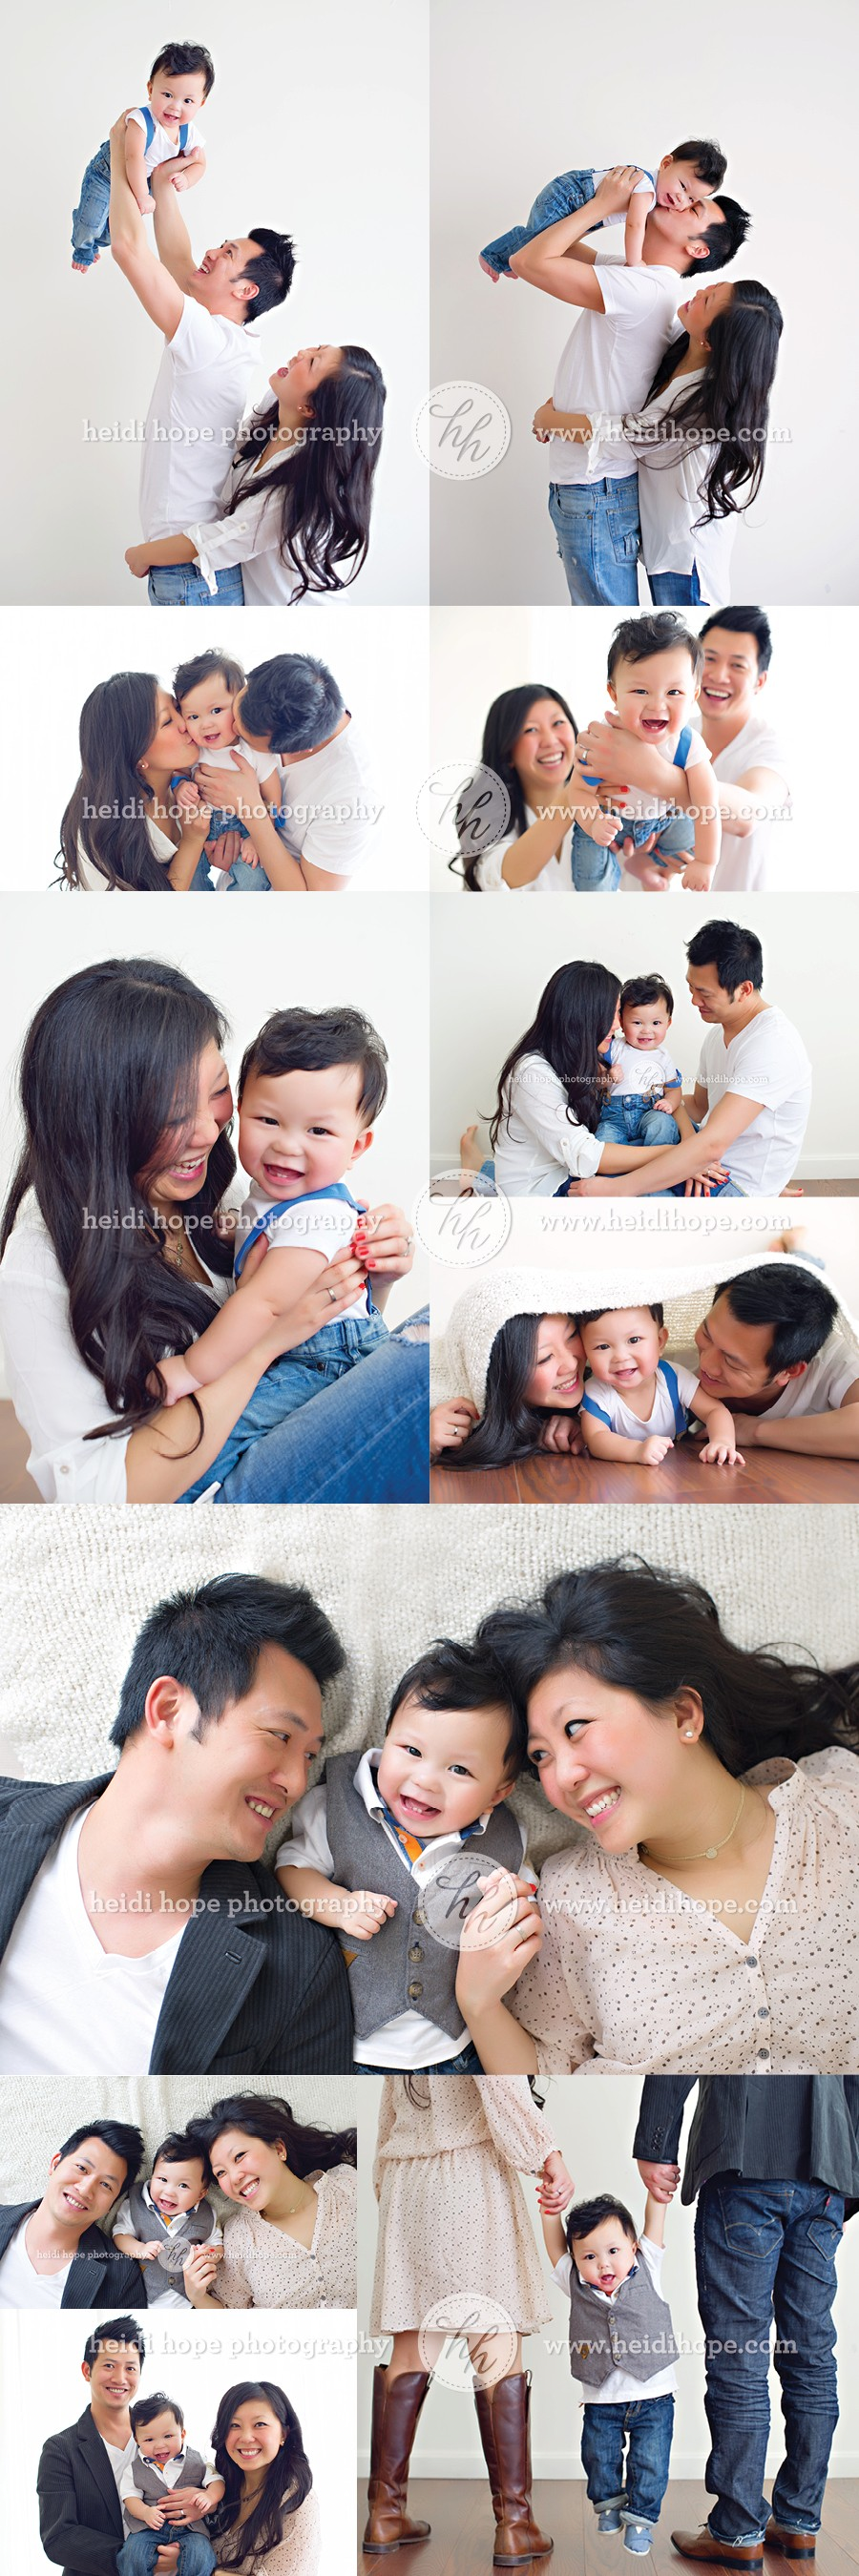 Family session in the studio by Heidi Hope Photograpy #9months #family #photoshoot #studio #session #naturallight